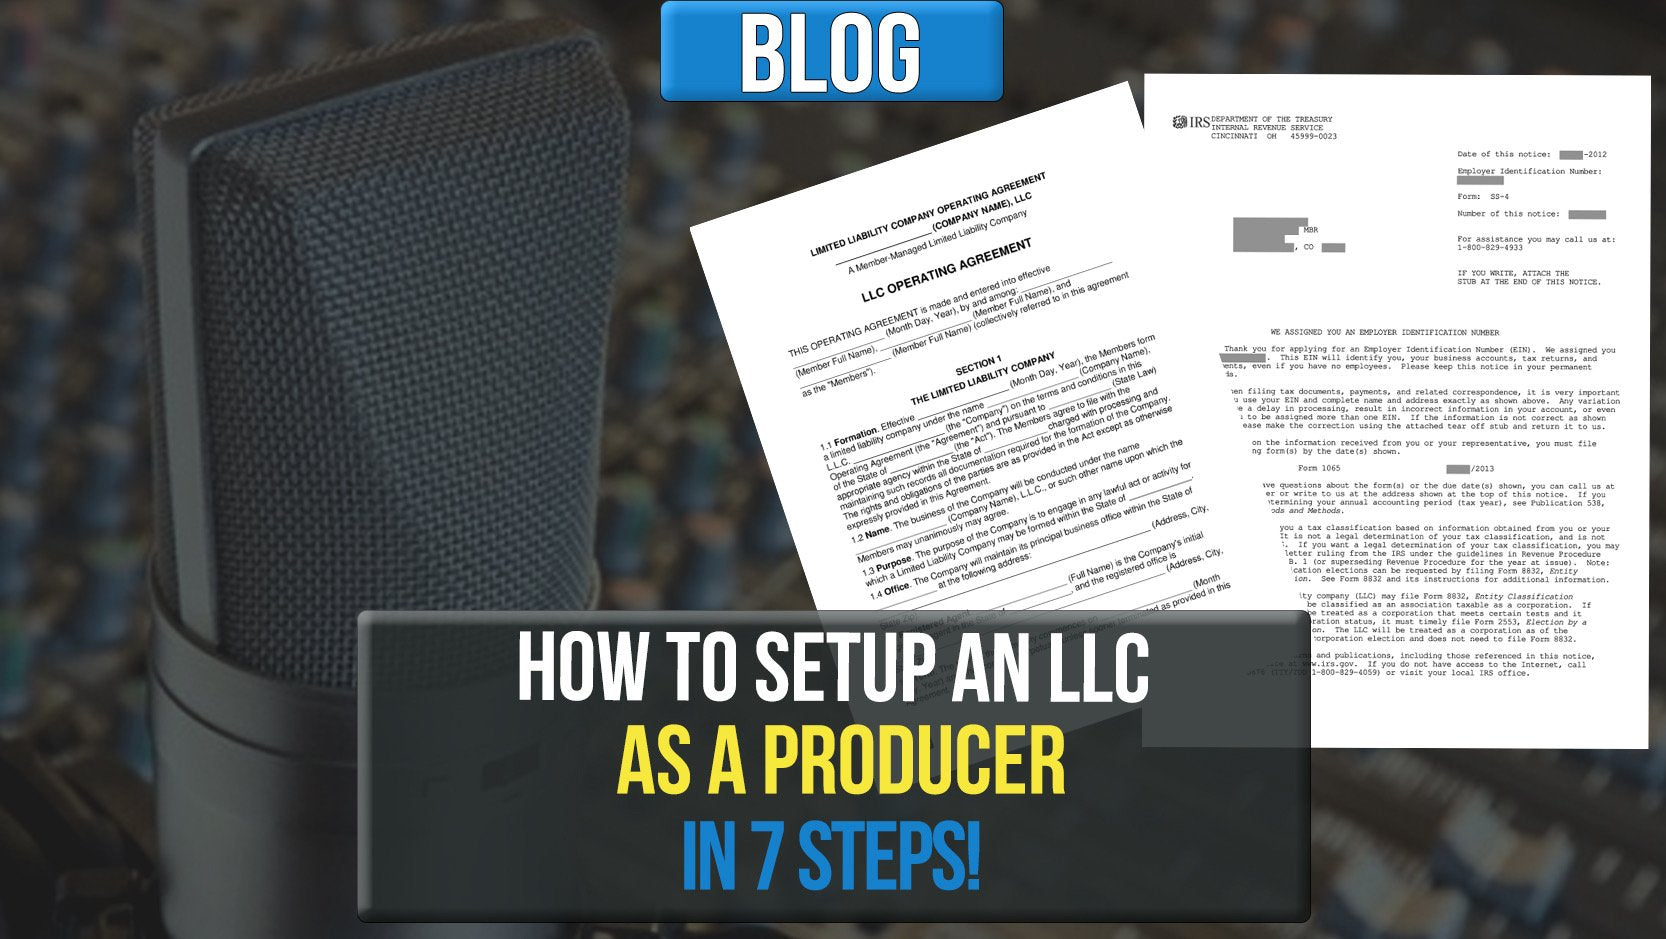 How To Start An LLC As A Producer In 7 Steps